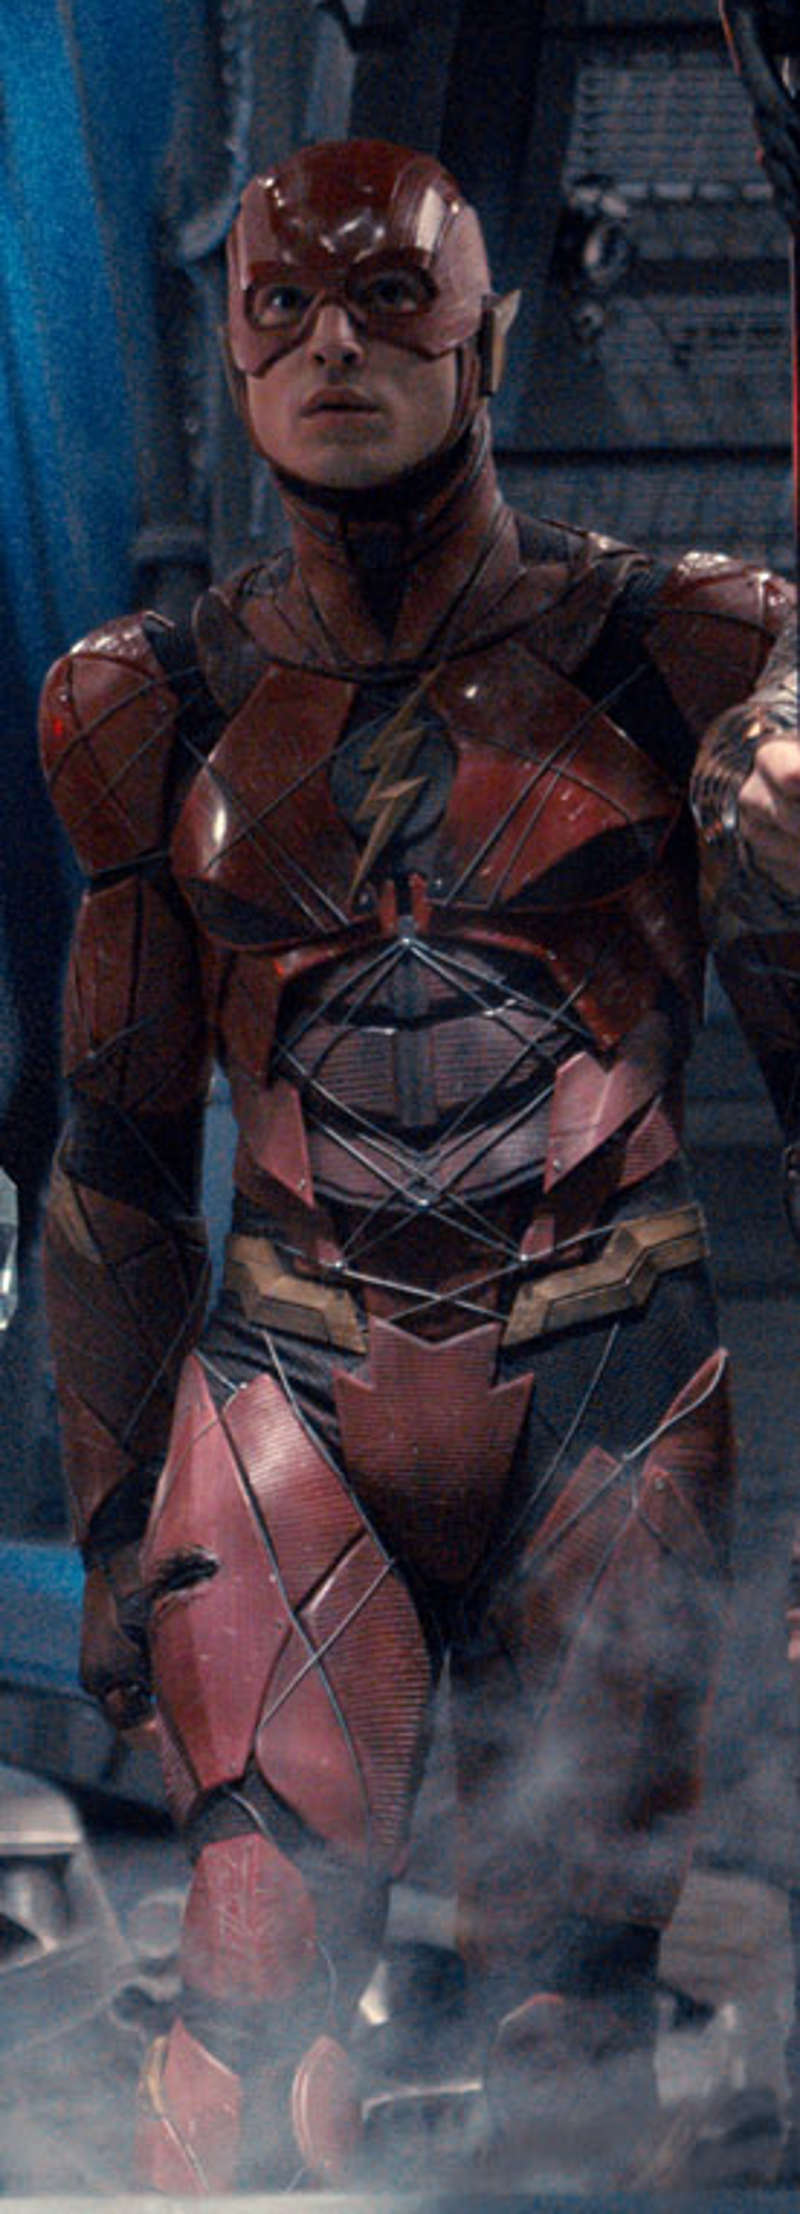 Justice League Costumes - Flash